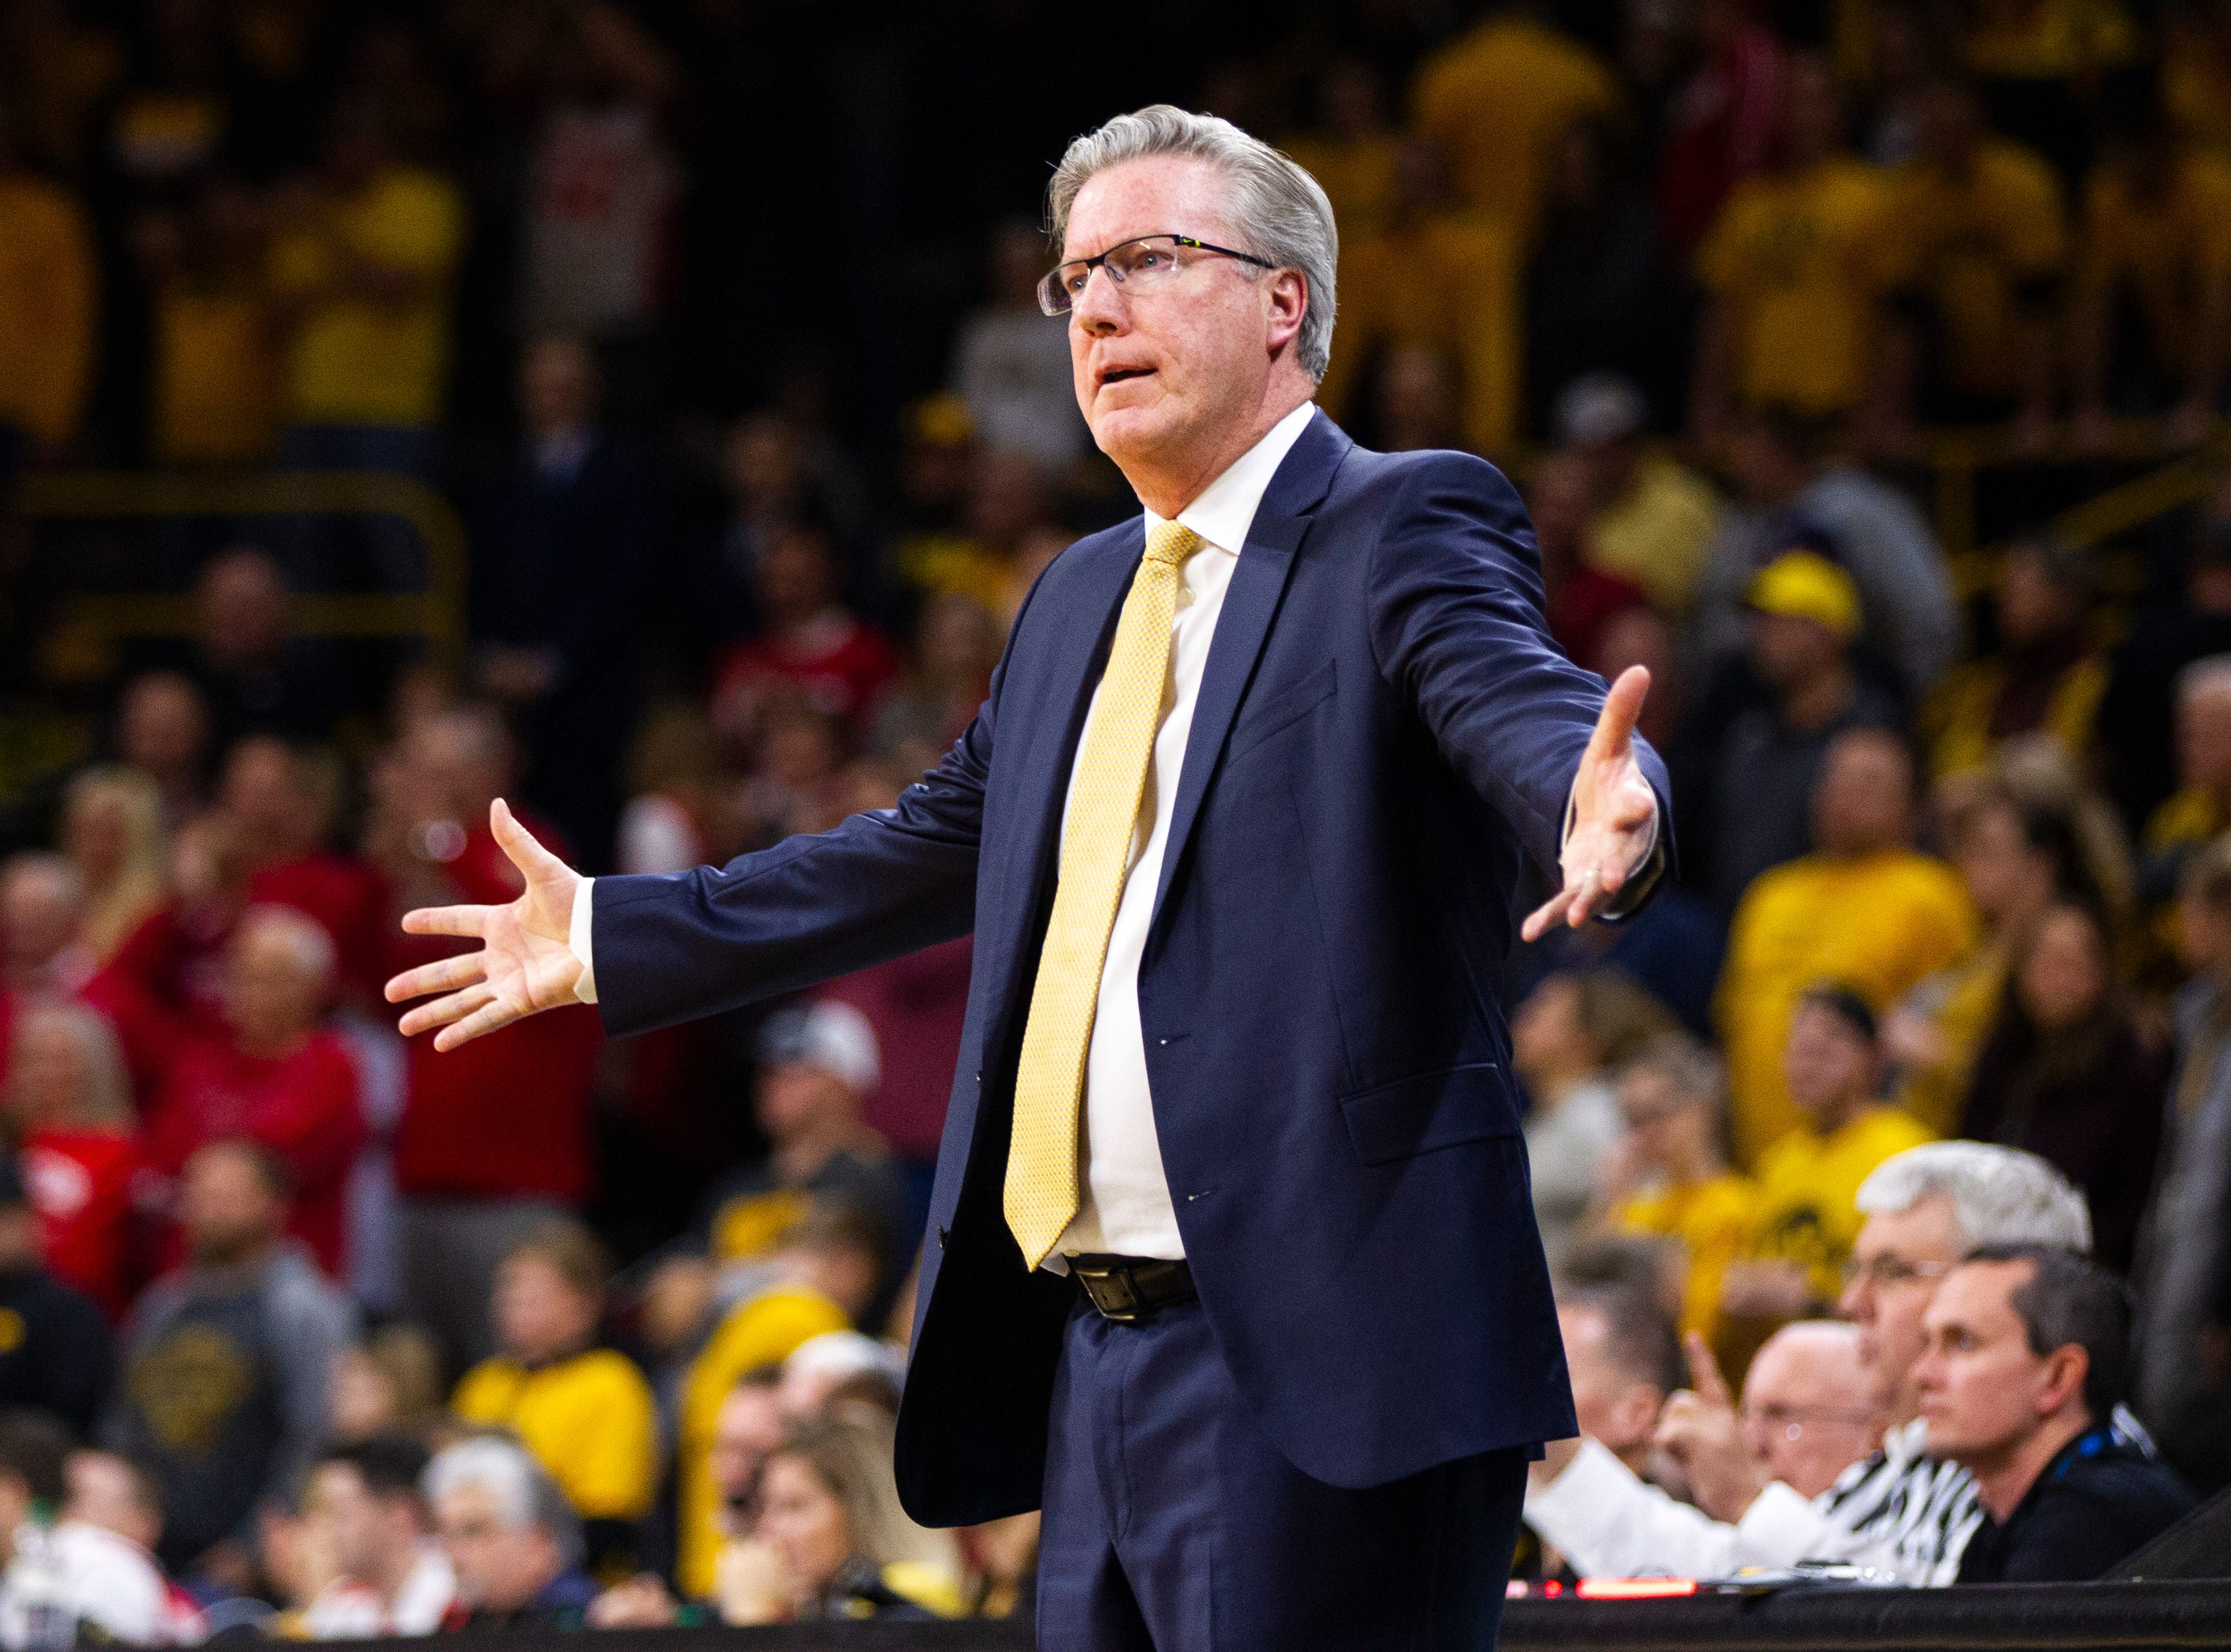 Iowa men's basketball head coach Fran McCaffery calls out to players as time winds down in the second half during a NCAA Big Ten Conference men's basketball game on Friday, Nov. 30, 2018, at Carver-Hawkeye Arena in Iowa City.